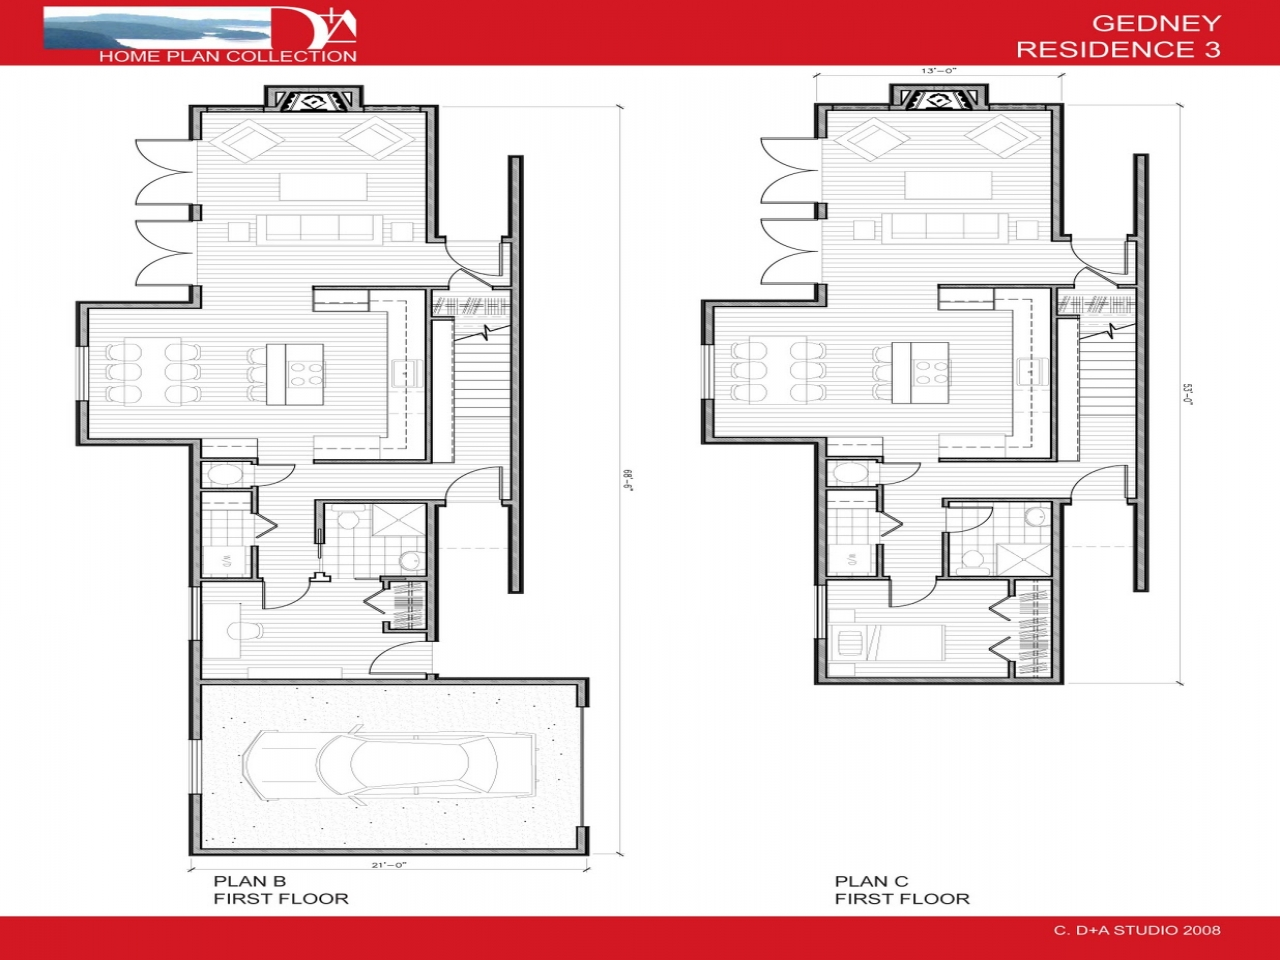 House plans under 1000 square feet 1000 sq ft ranch plans for 1000 feet house plans